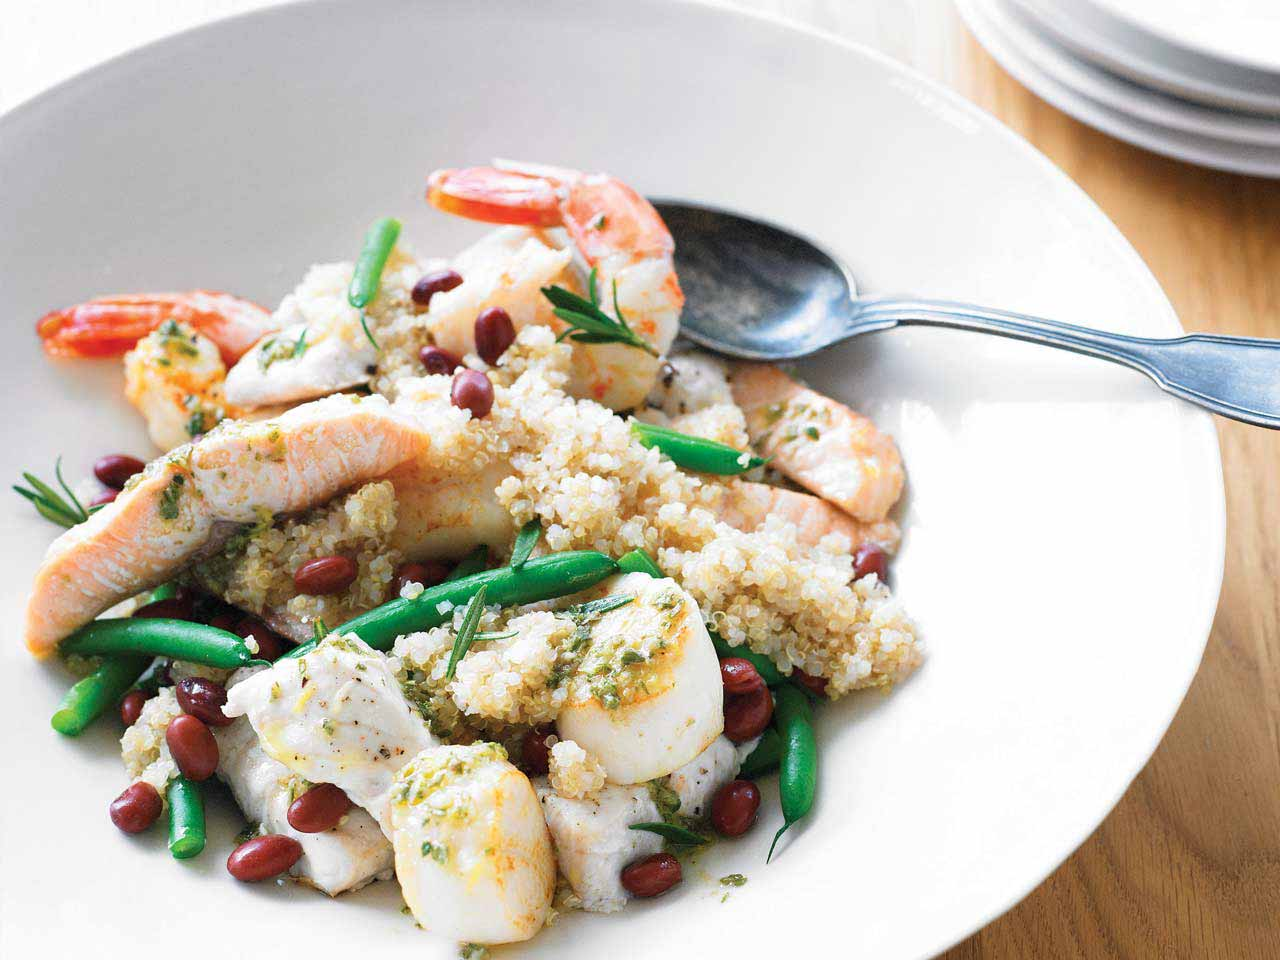 Warm seafood and quinoa salad